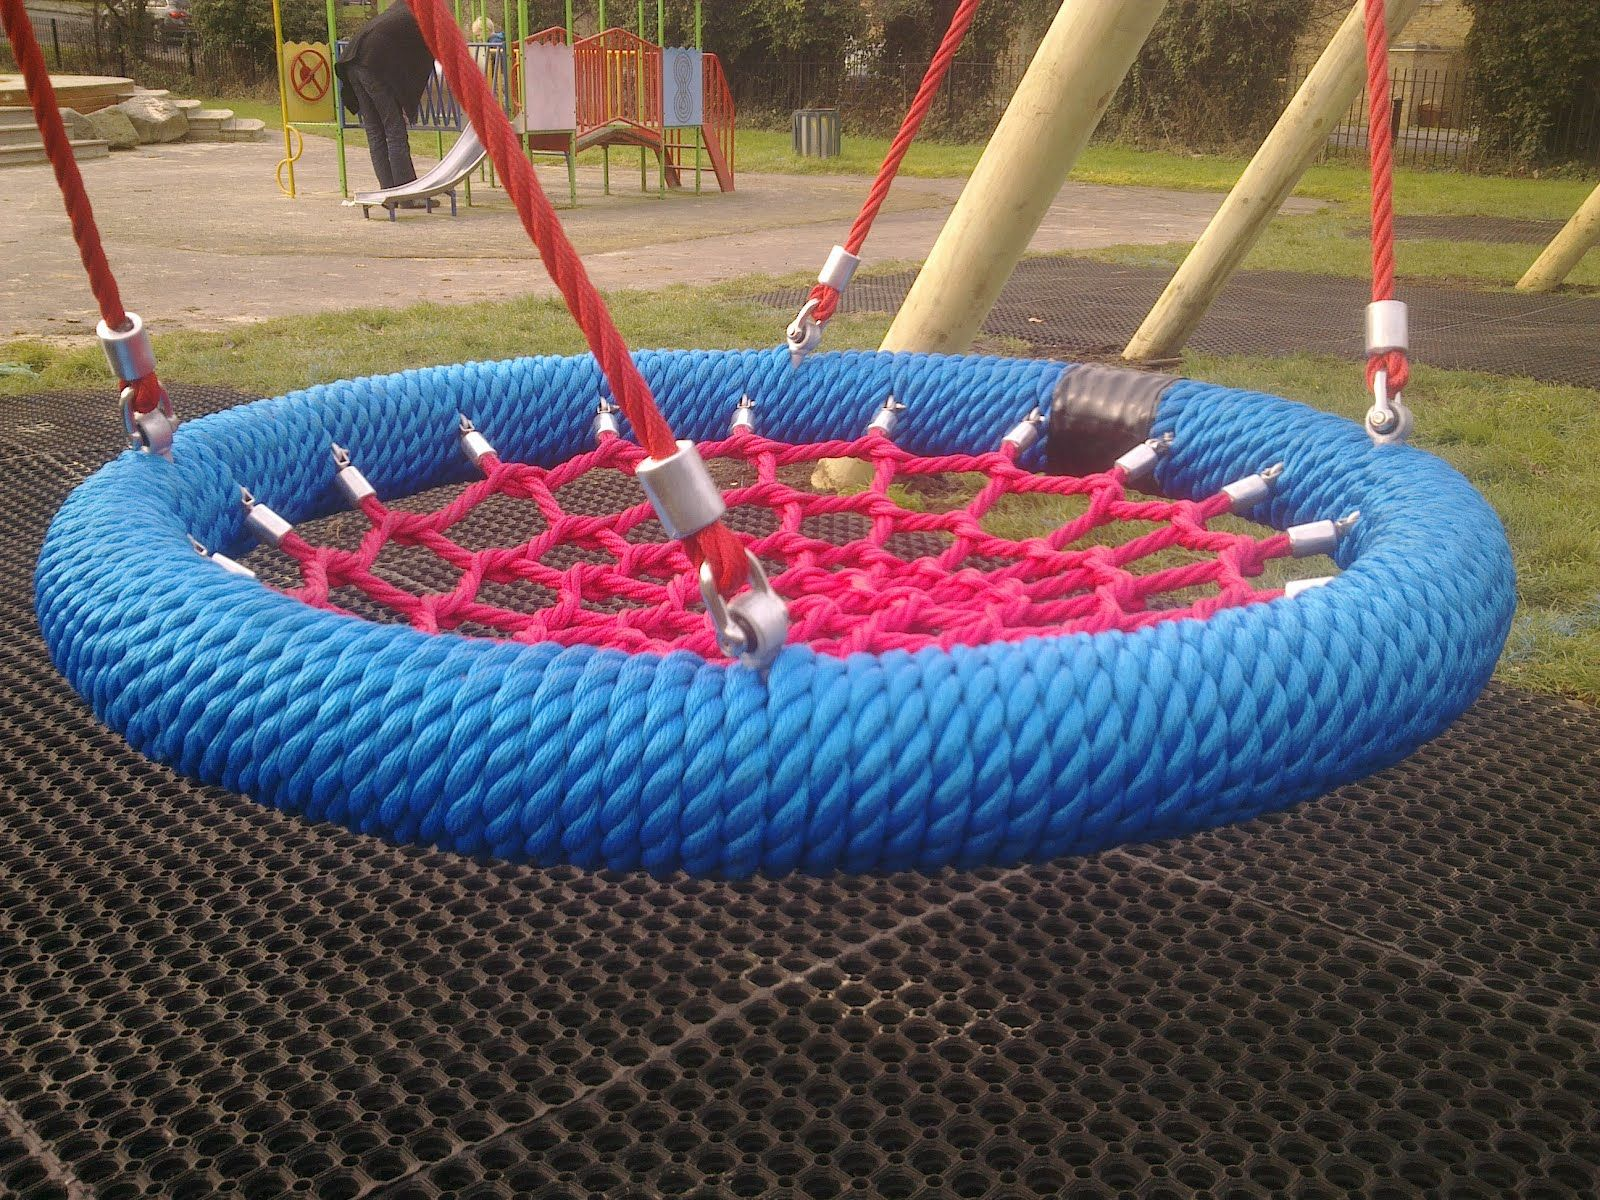 Colourful swing